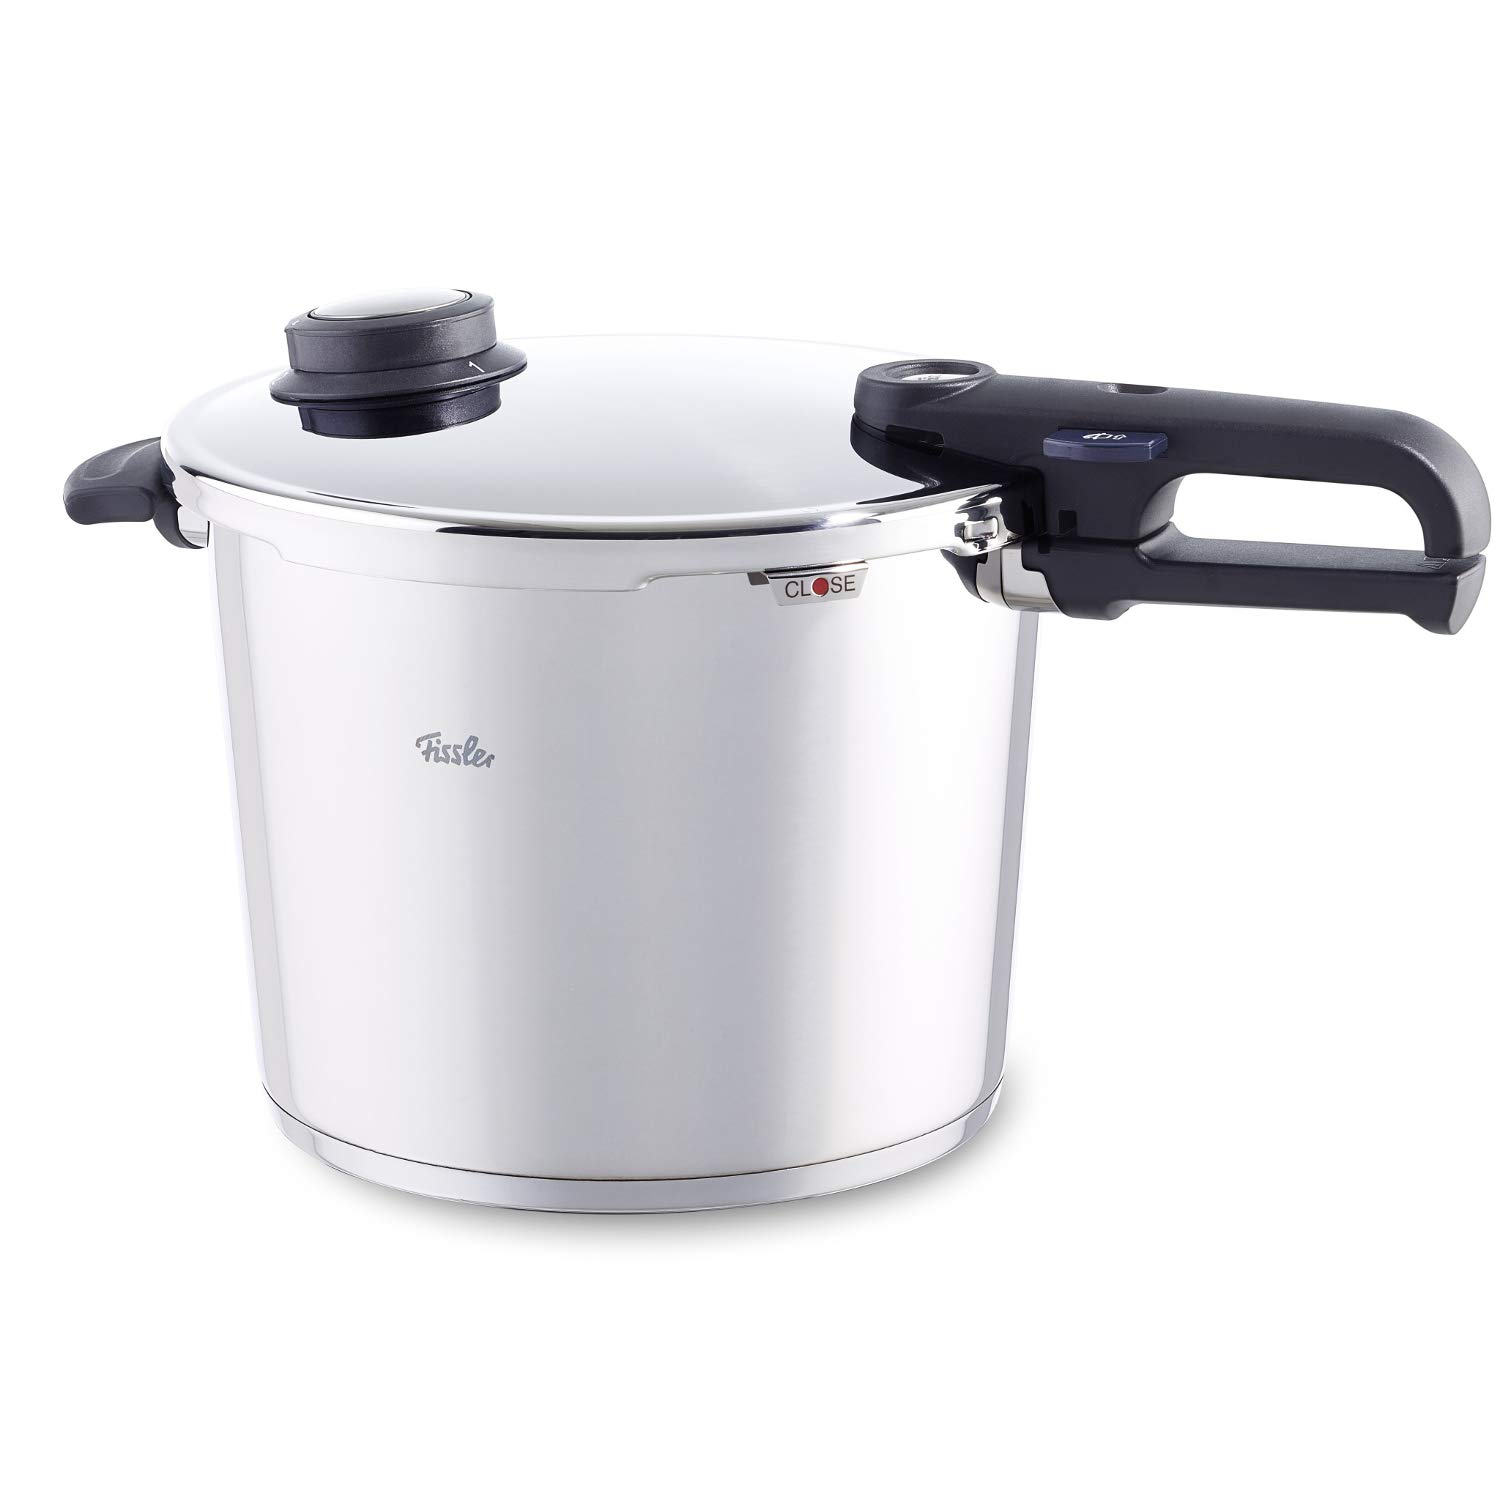 Fissler Vitavit Stainless Steel 10.6 Quart Premium Pressure Cooker with Steamer Insert